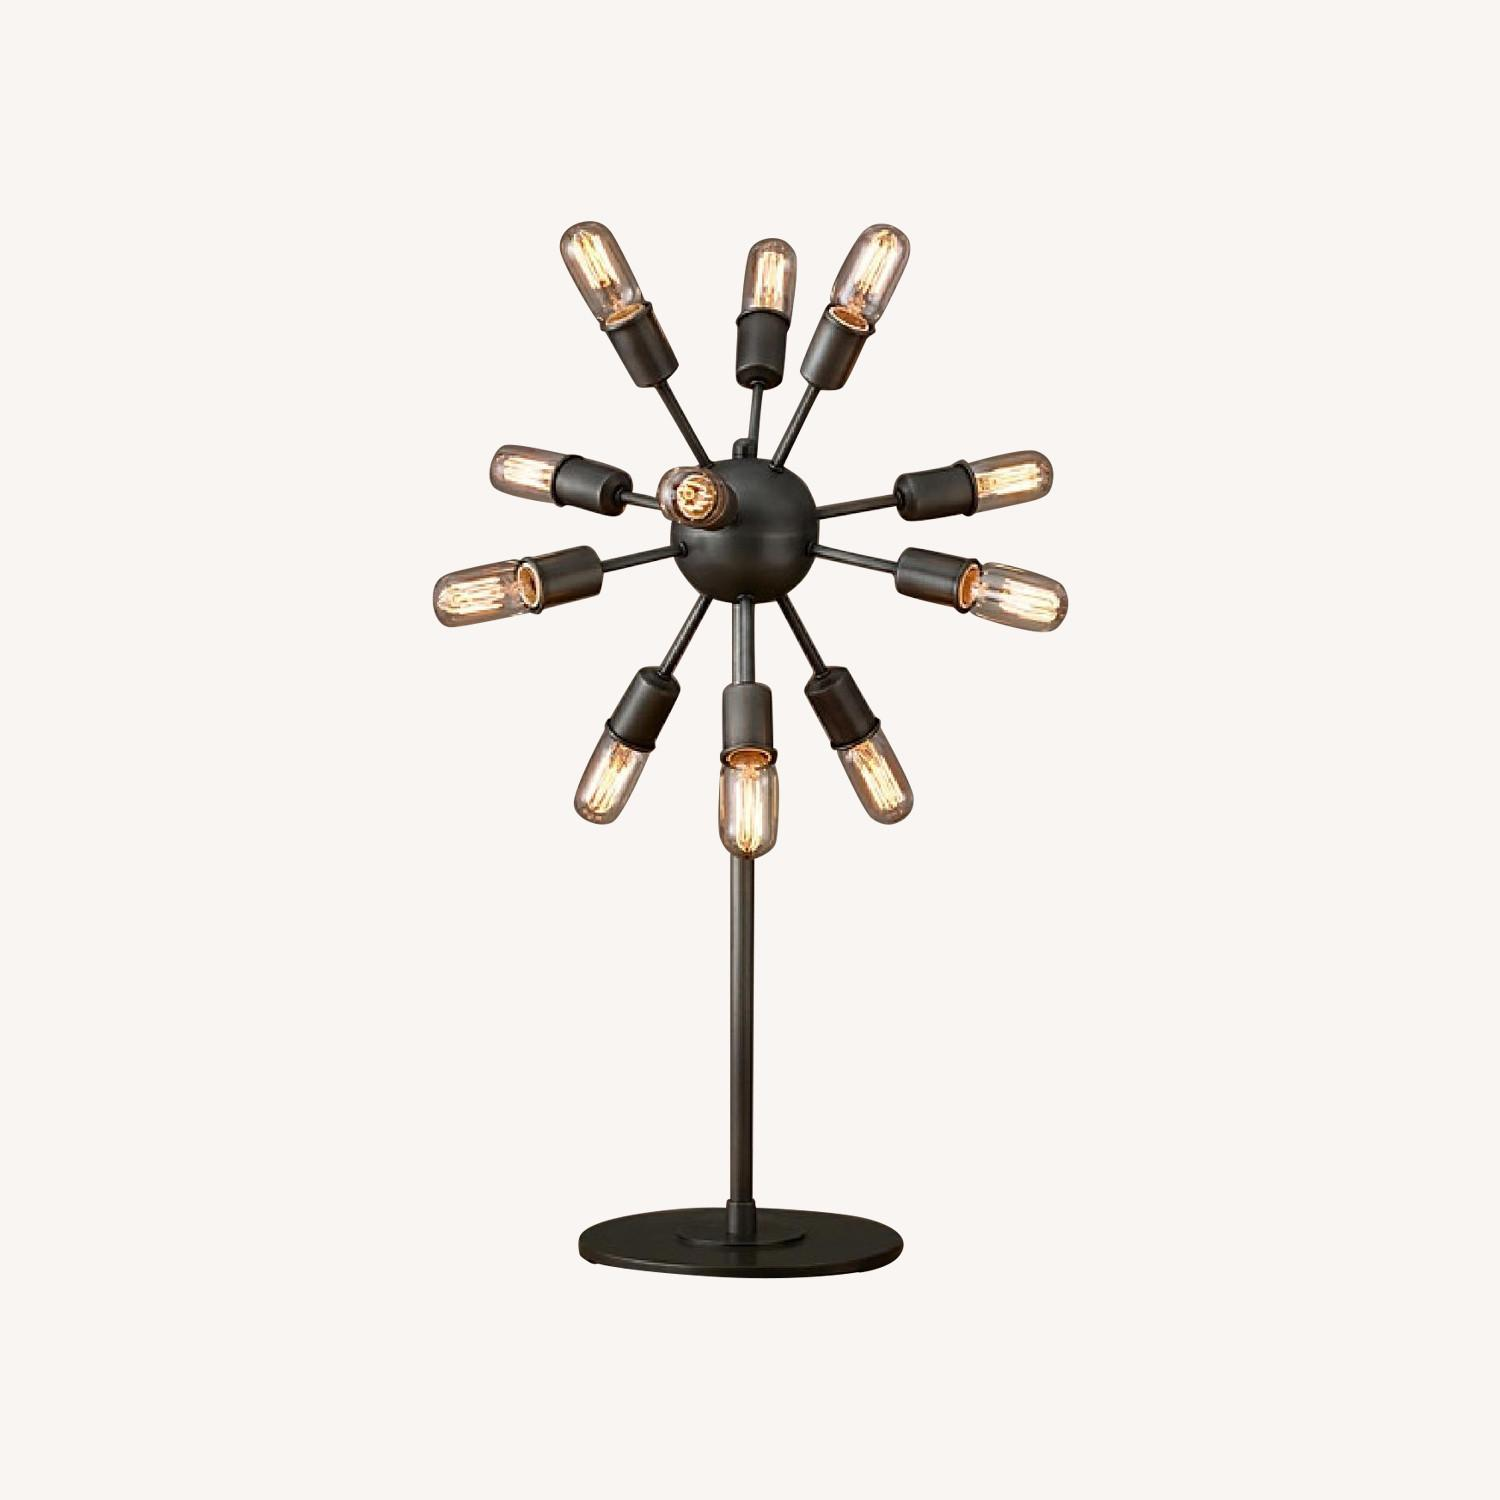 RH Sputnik filament table lamp - image-3